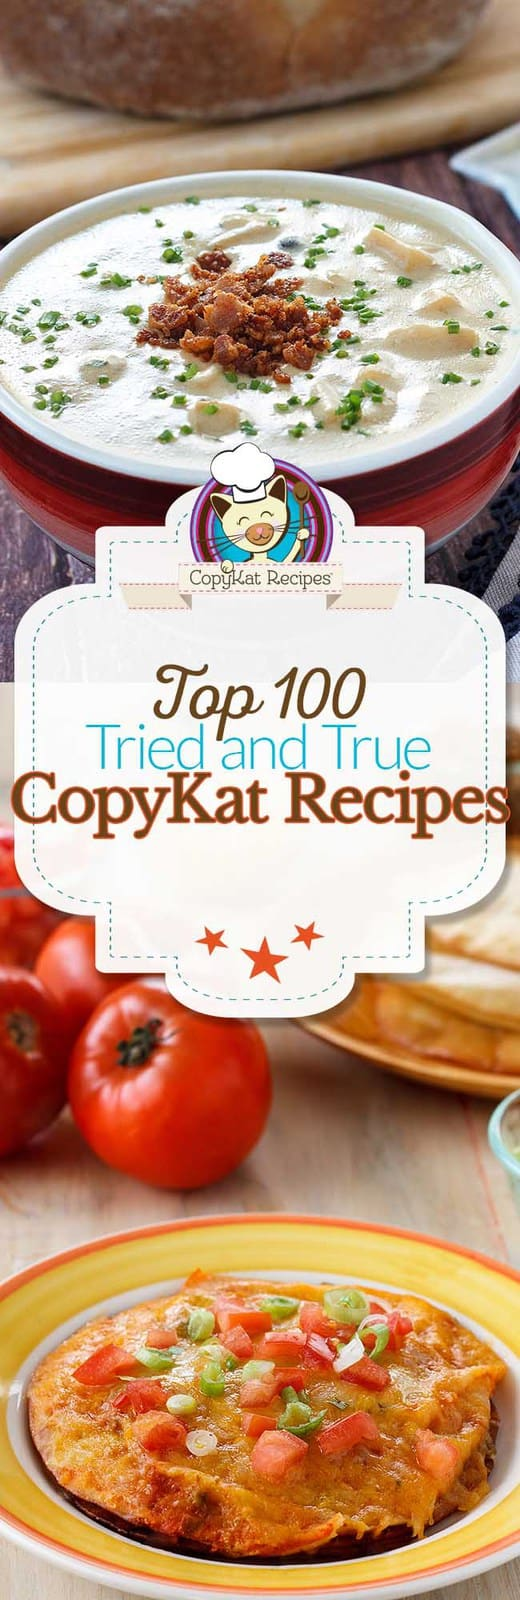 Get CopyKat.com's most popular copycat recipes. Tried and True recipes that readers love.